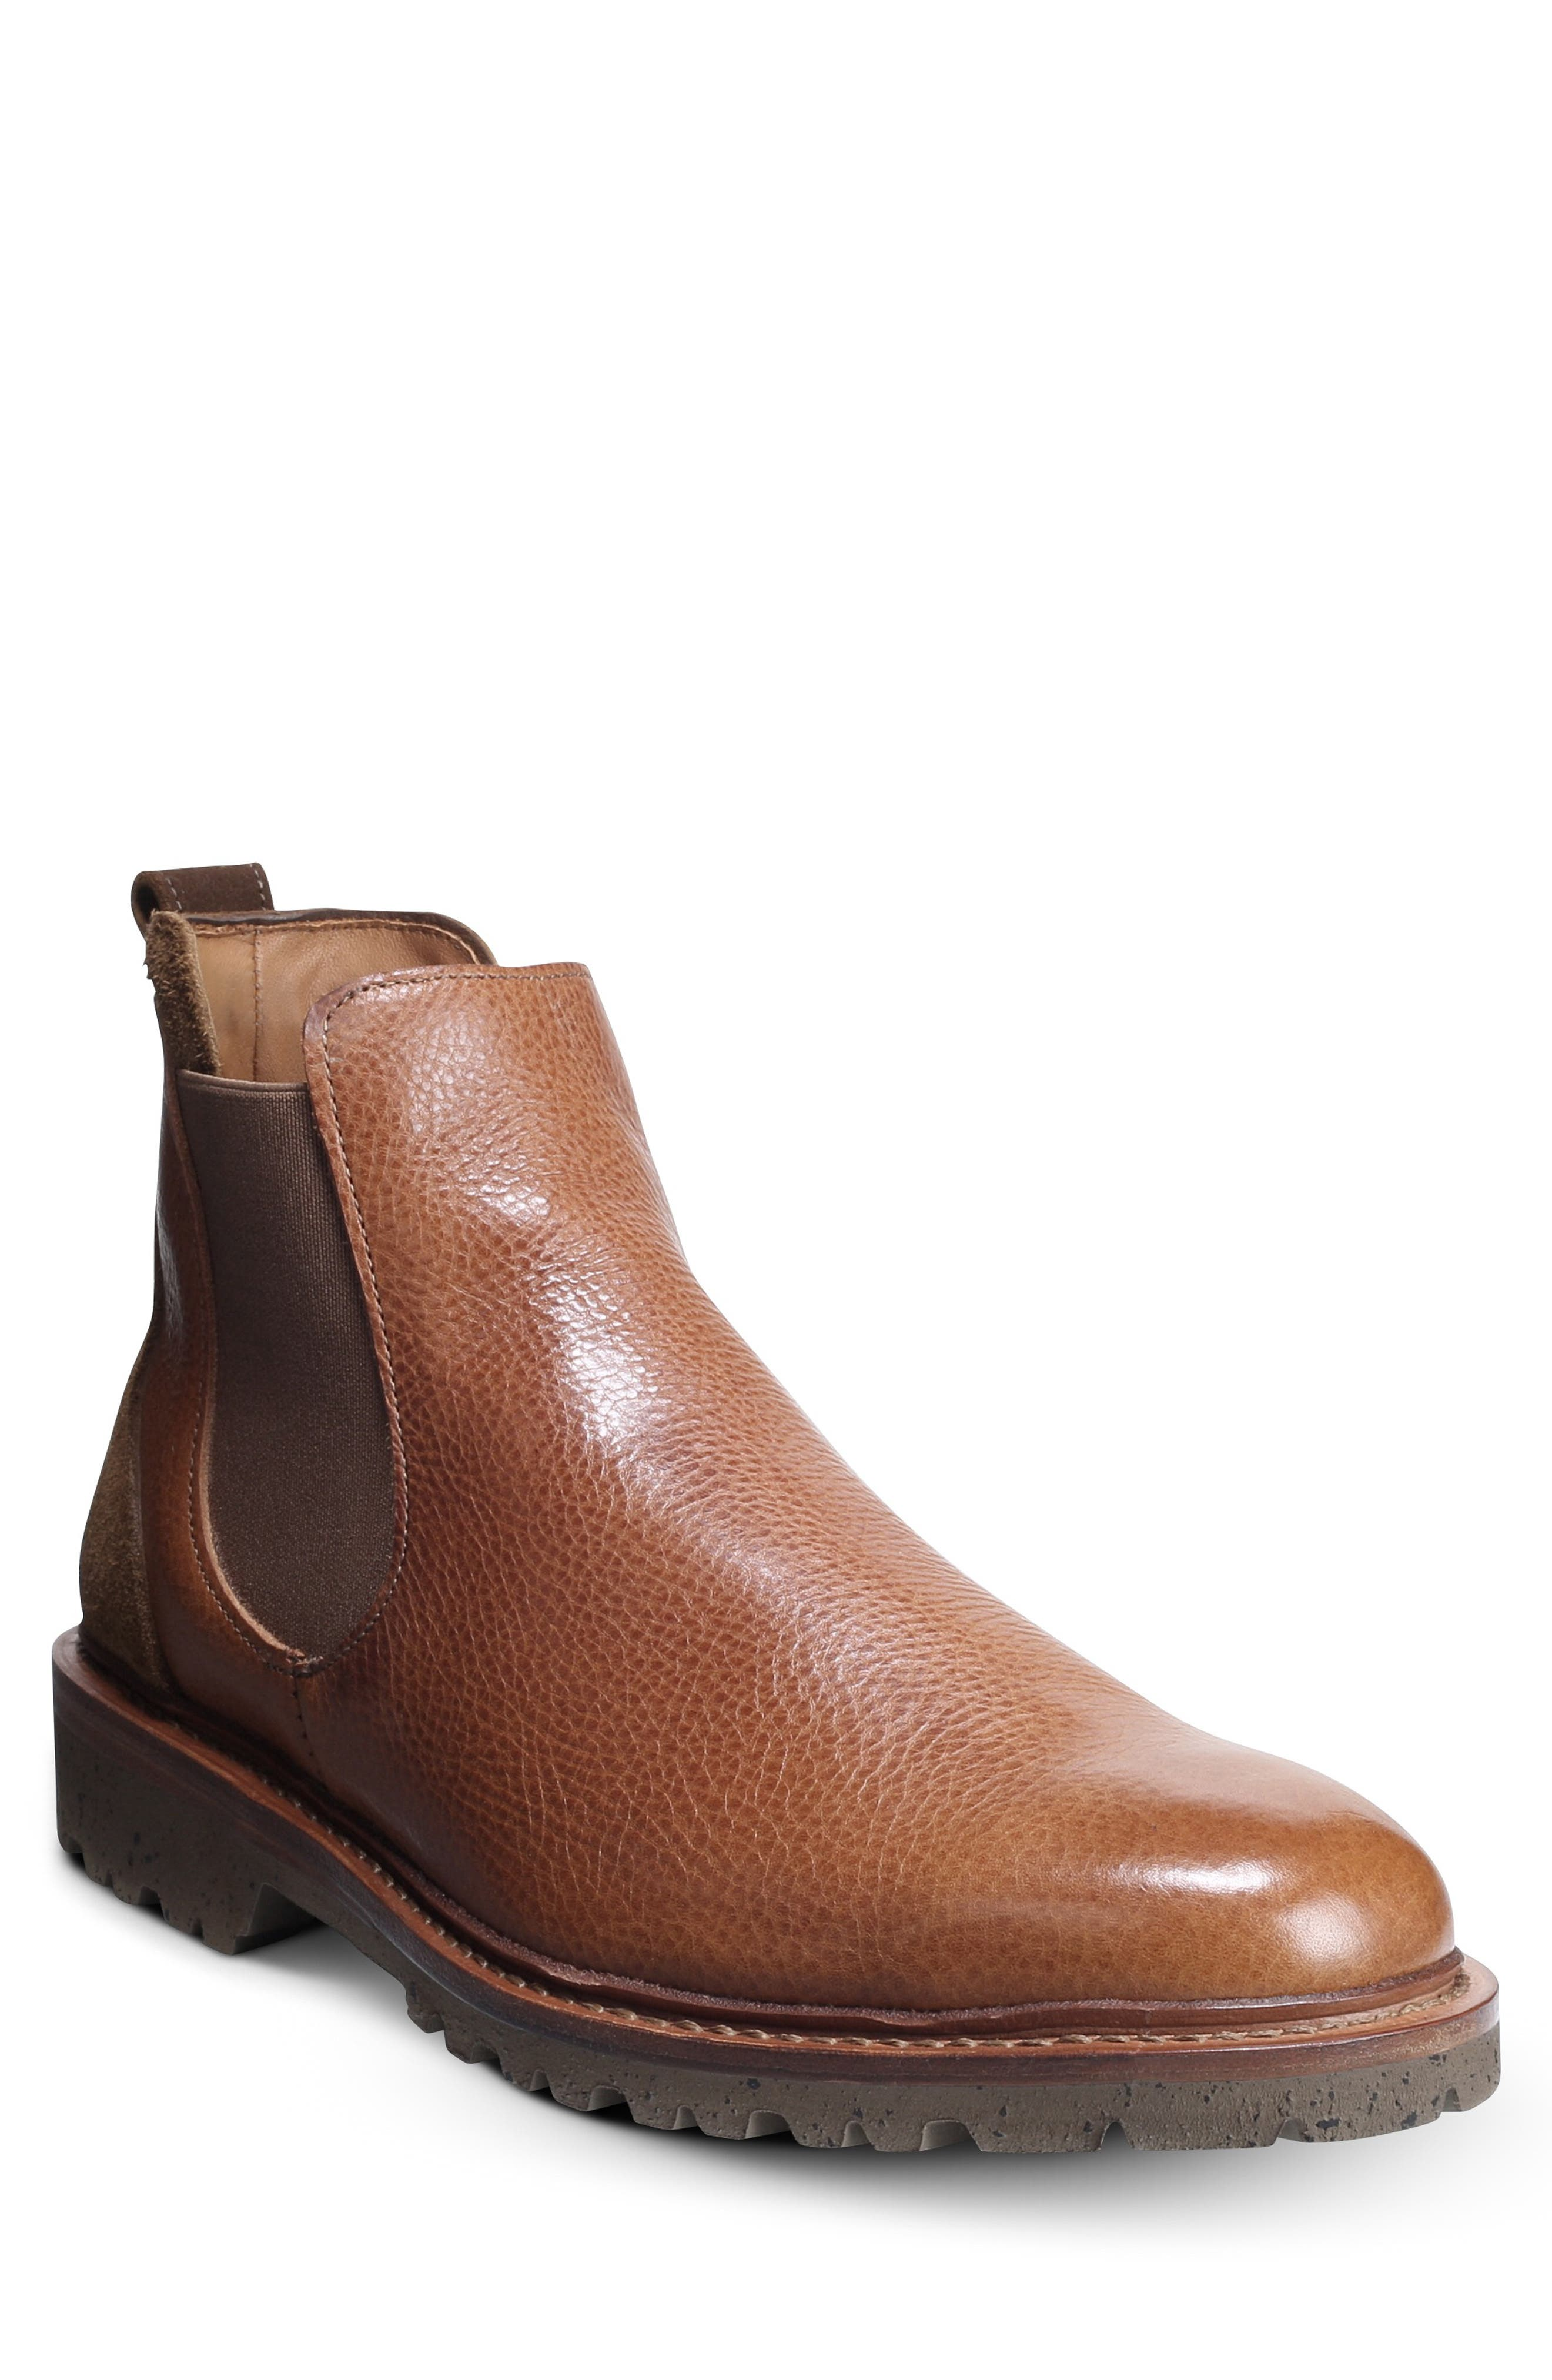 Discovery Chelsea Boot